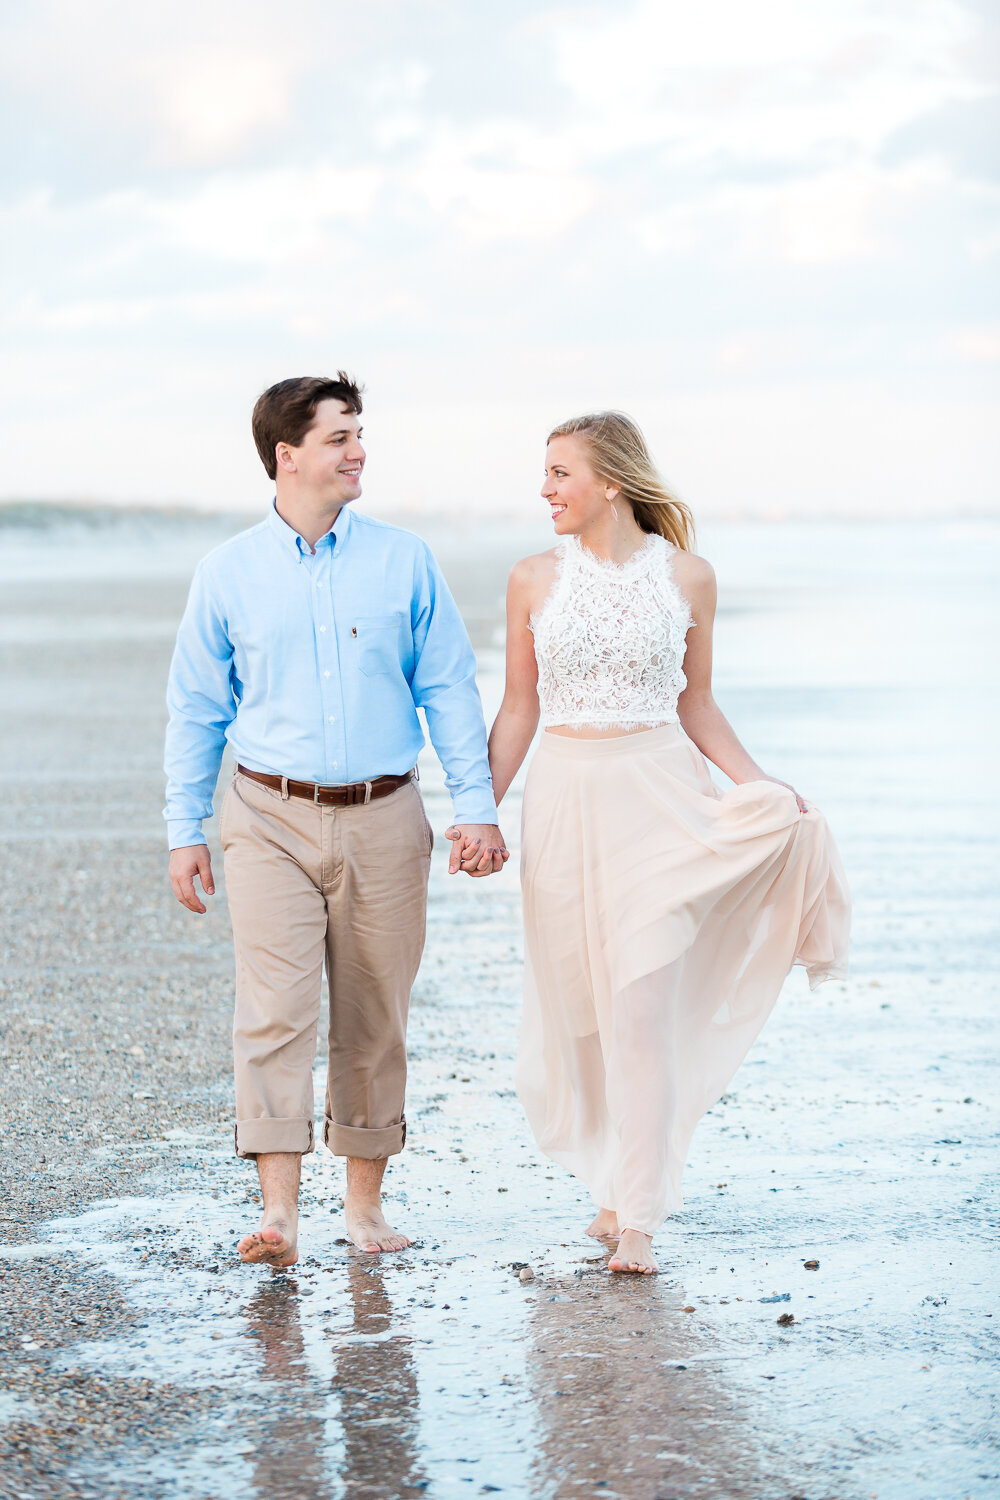 engagement session inspiration in one of the best photoshoot locations in town - Hanna Park